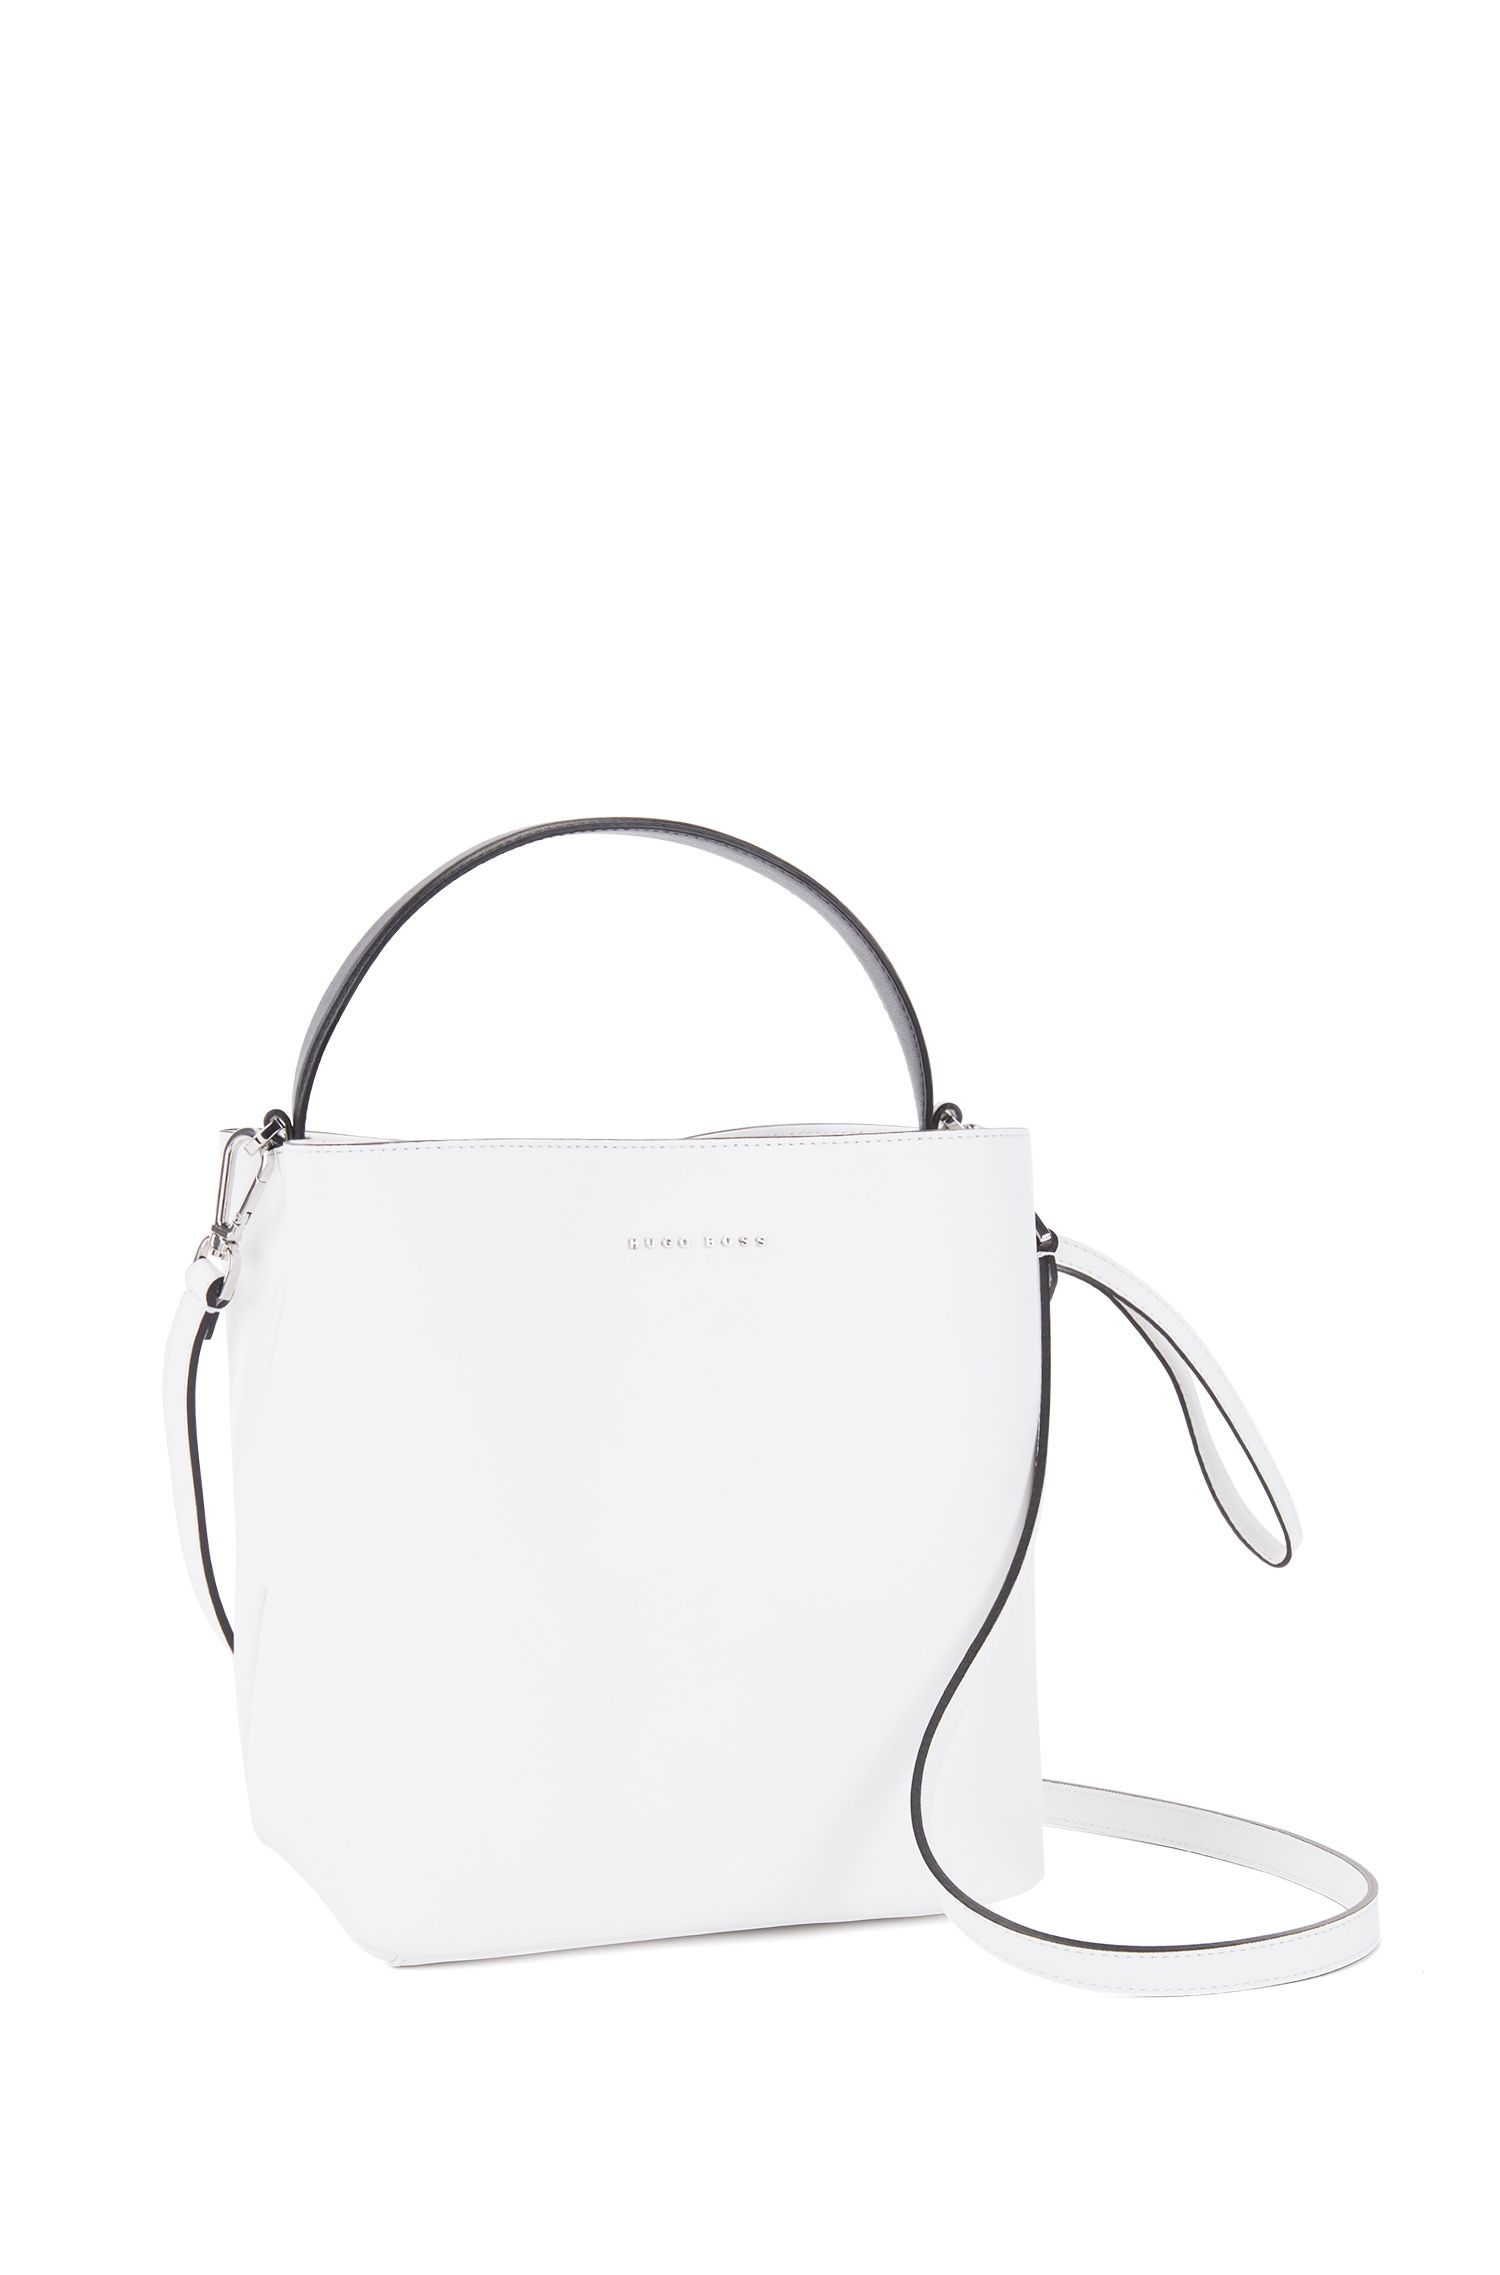 Gallery Collection bucket bag in monochrome Italian nappa leather